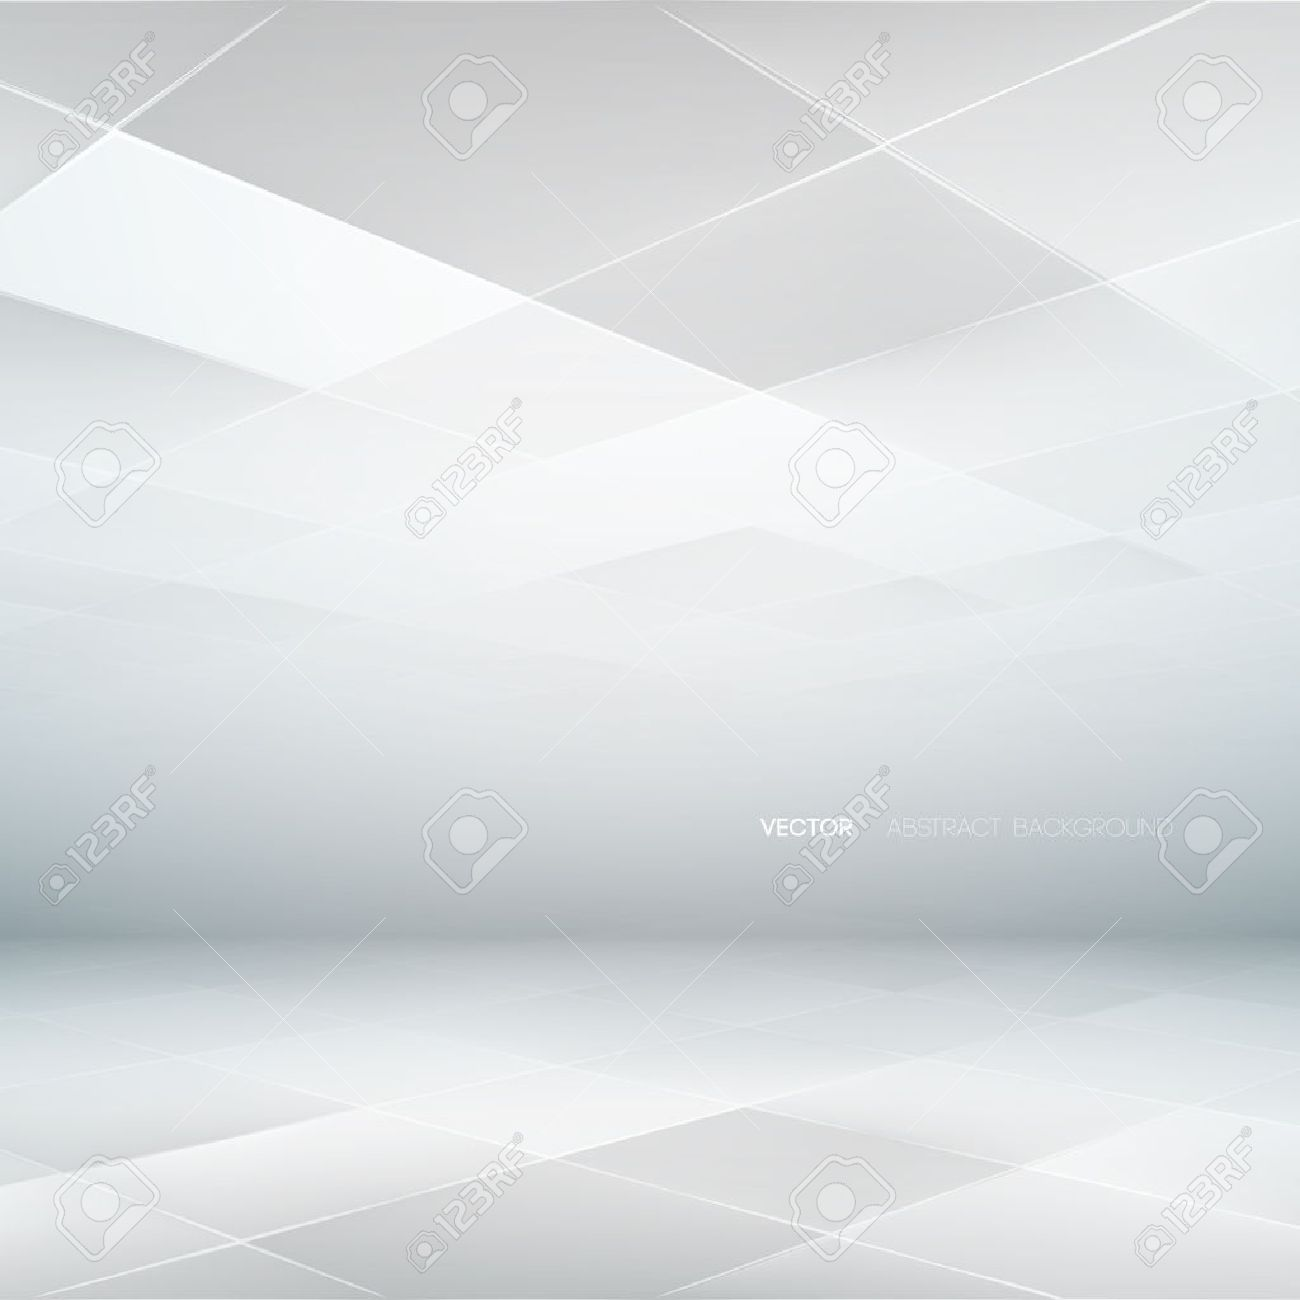 Background image transparency - Abstract Background Illustration Used Opacity Mask And Transparency Layers Of Background And Mesh Objects Stock Vector